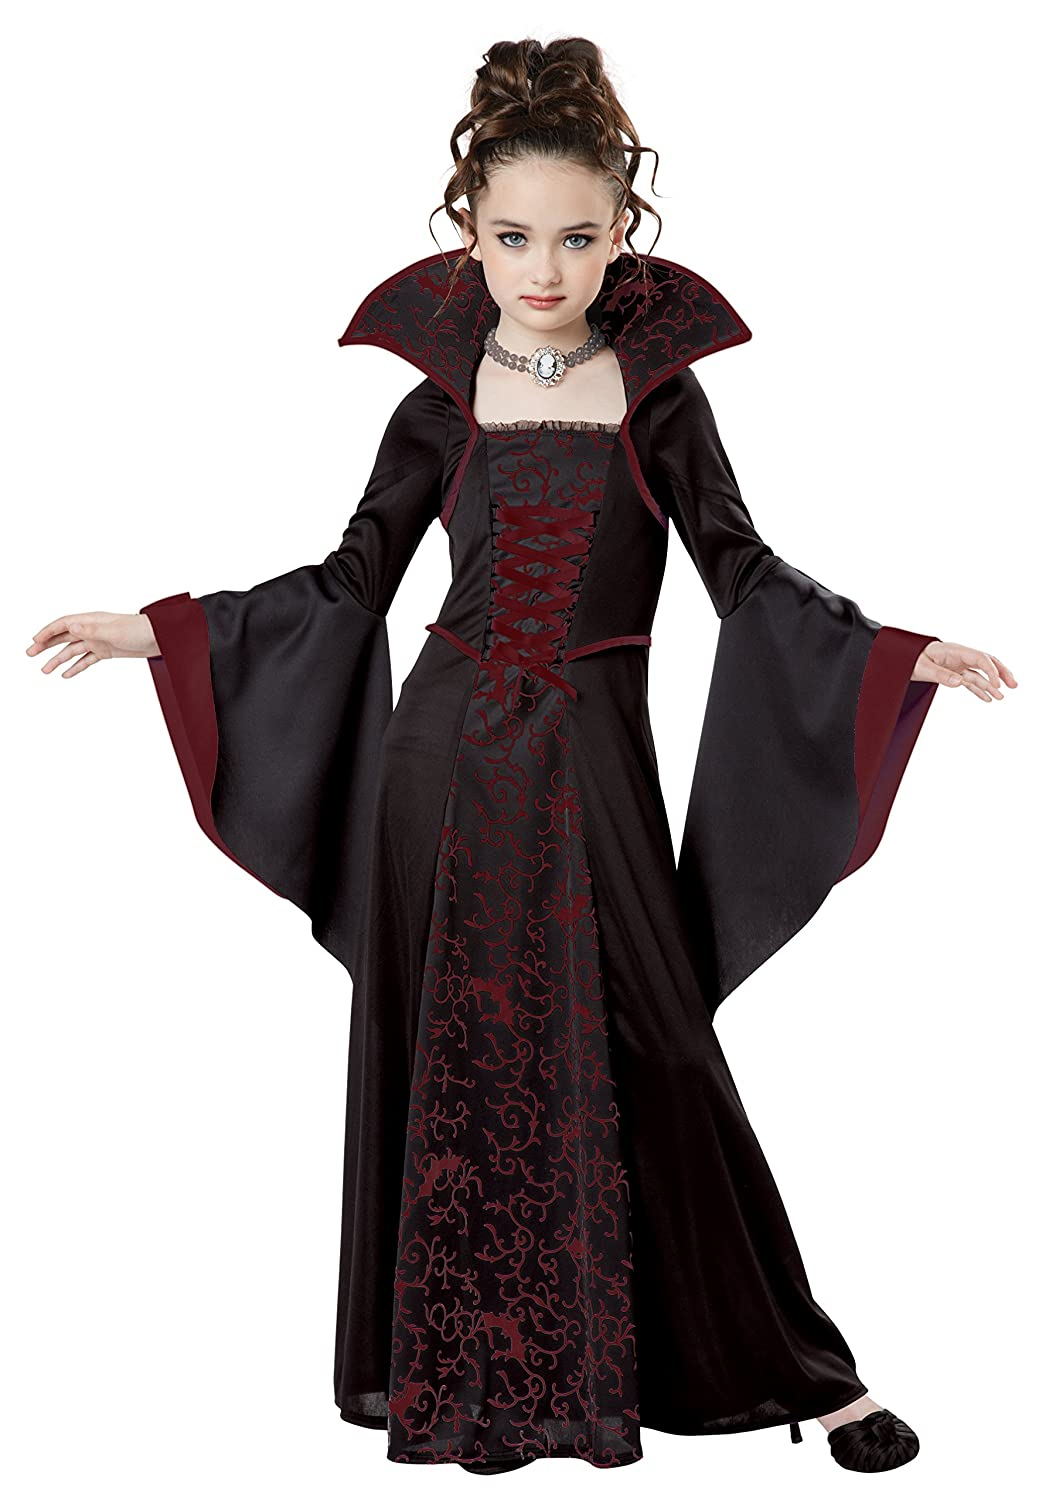 amazoncom california costumes child royal vampire costume toys games